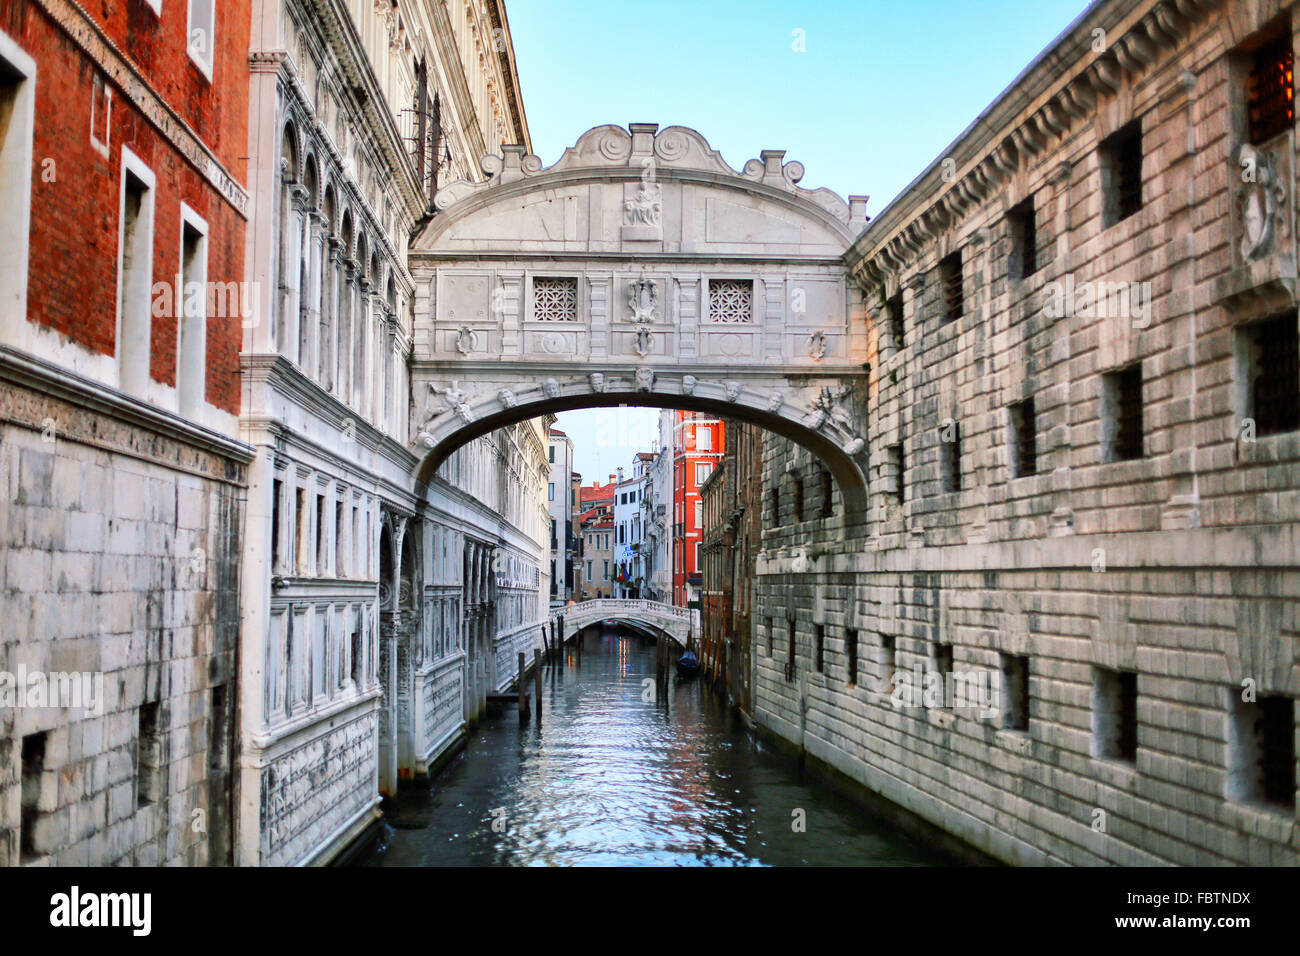 View of Bridge Of Sighs over canal - Stock Image